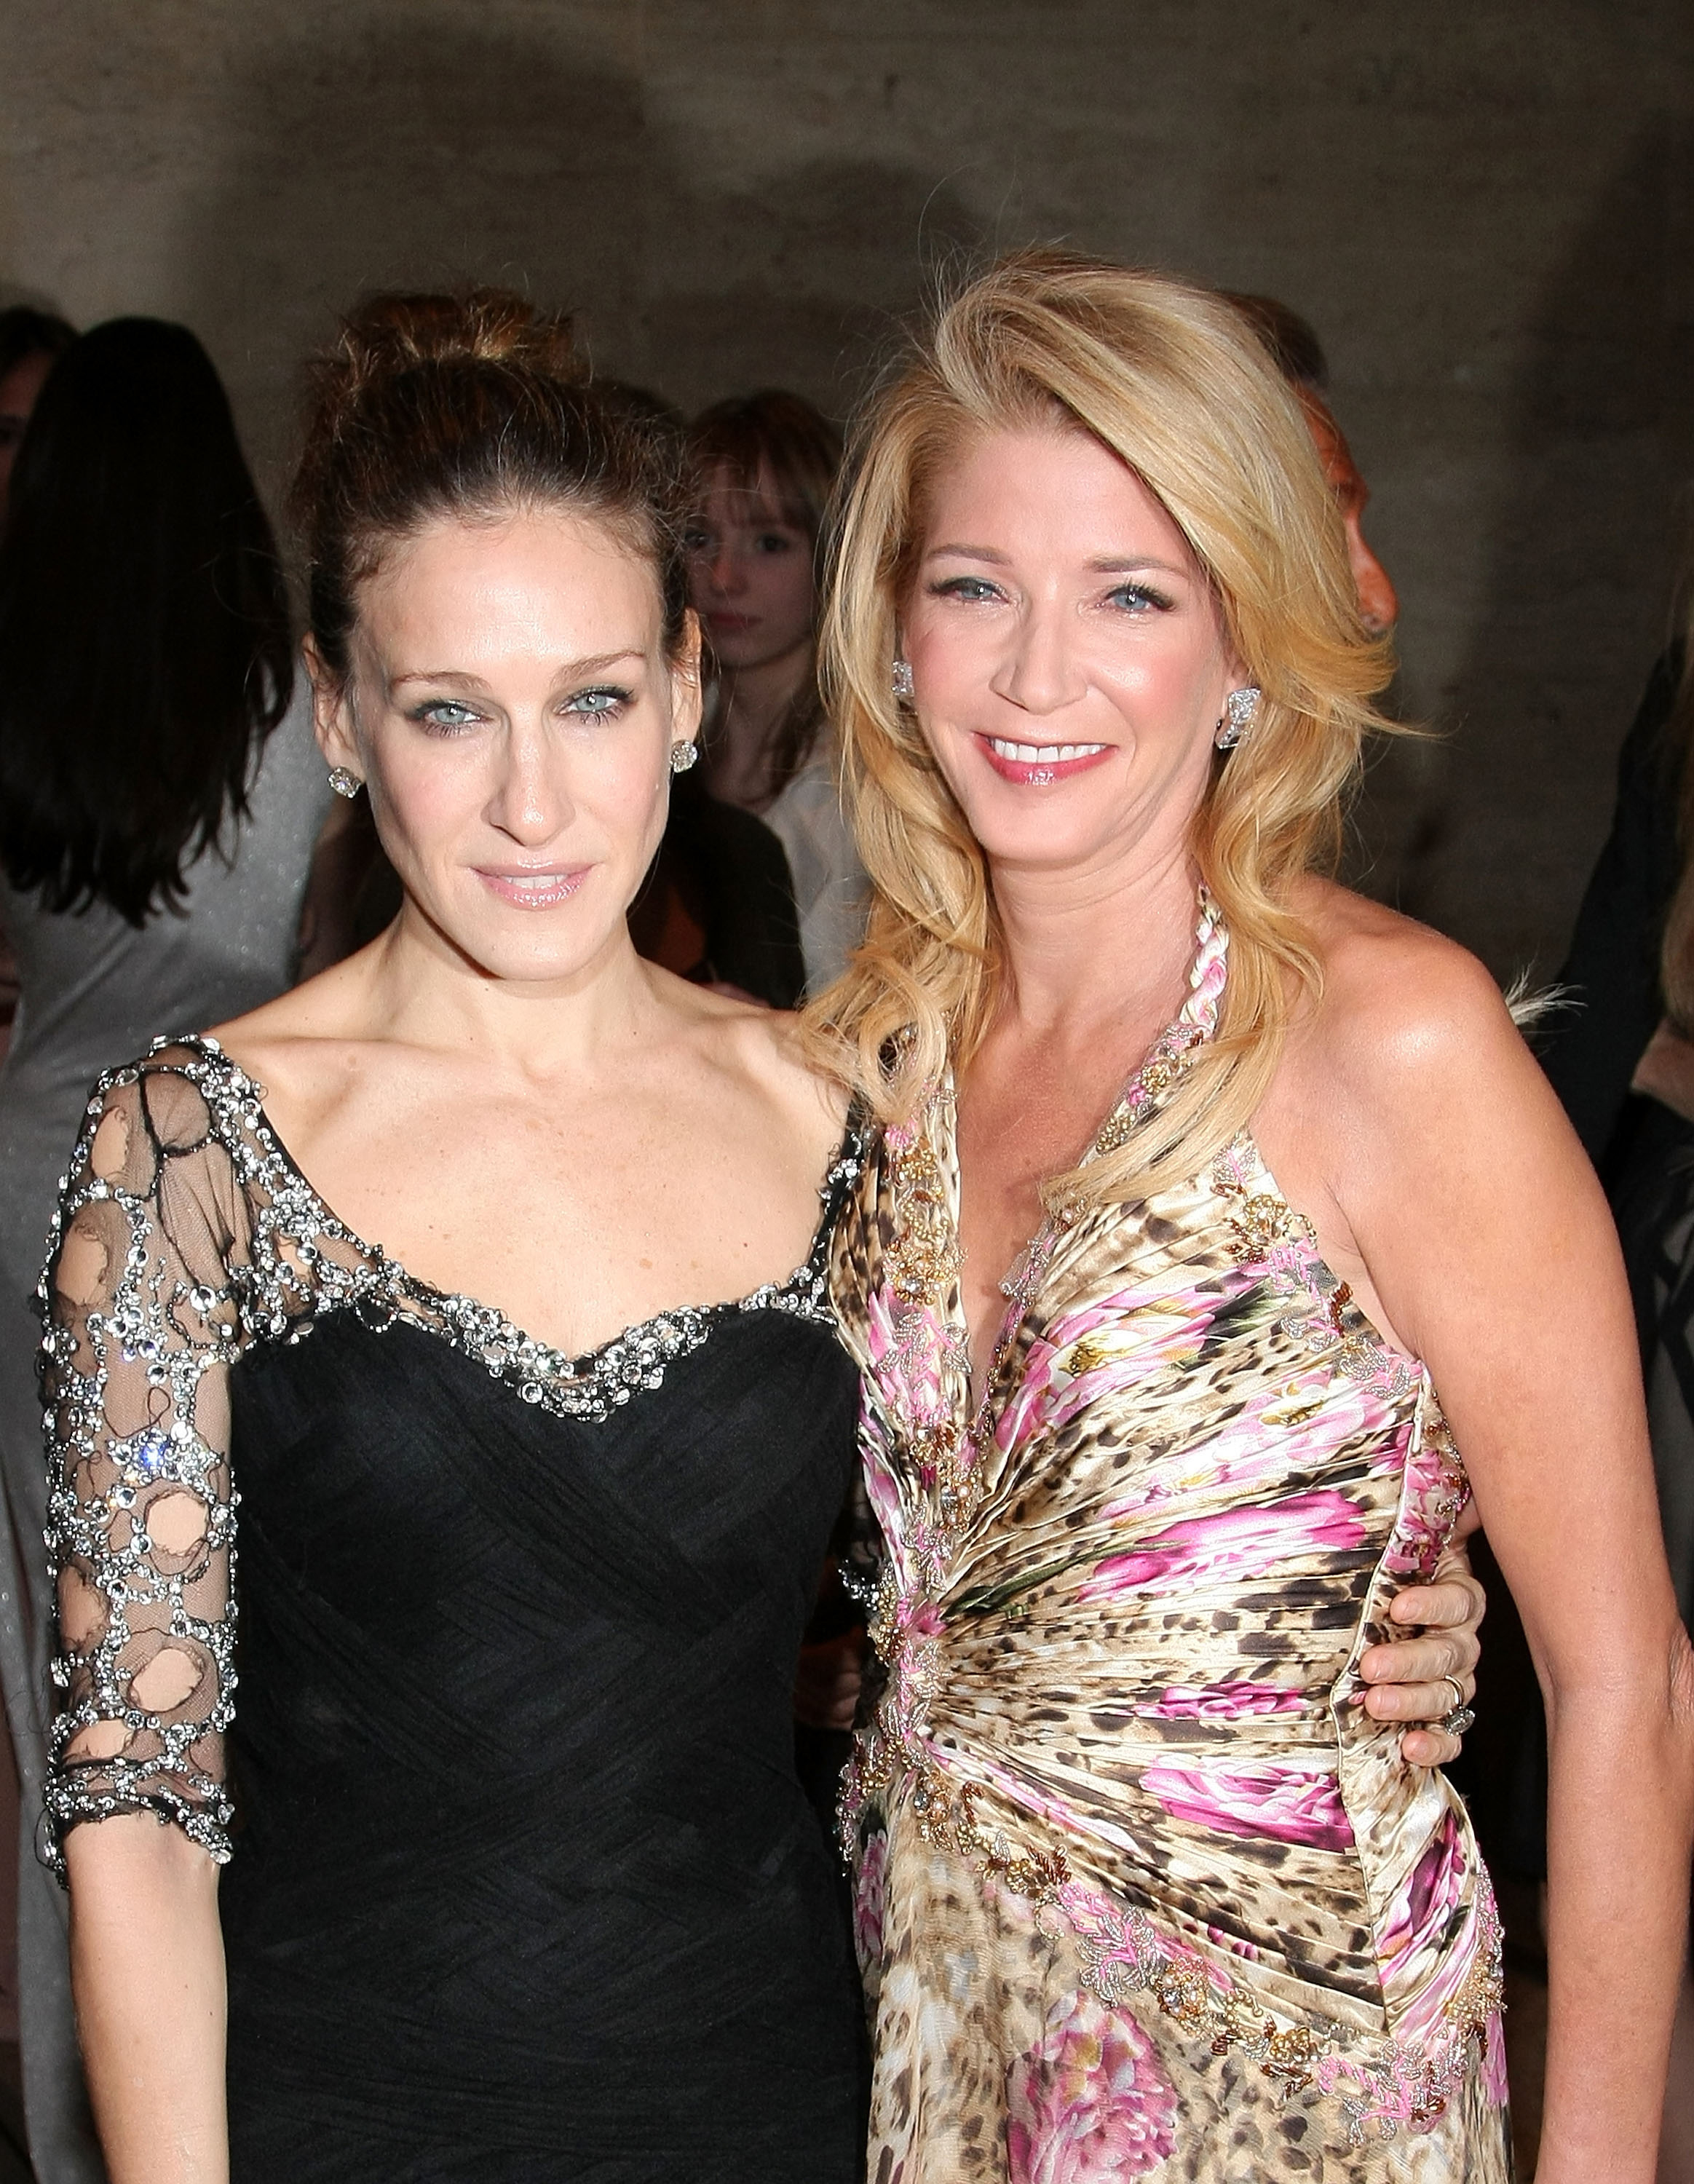 Sarah Jessica Parker (who played Carrie Bradshaw) & Candace Bushnell (who created Carrie Bradshaw)